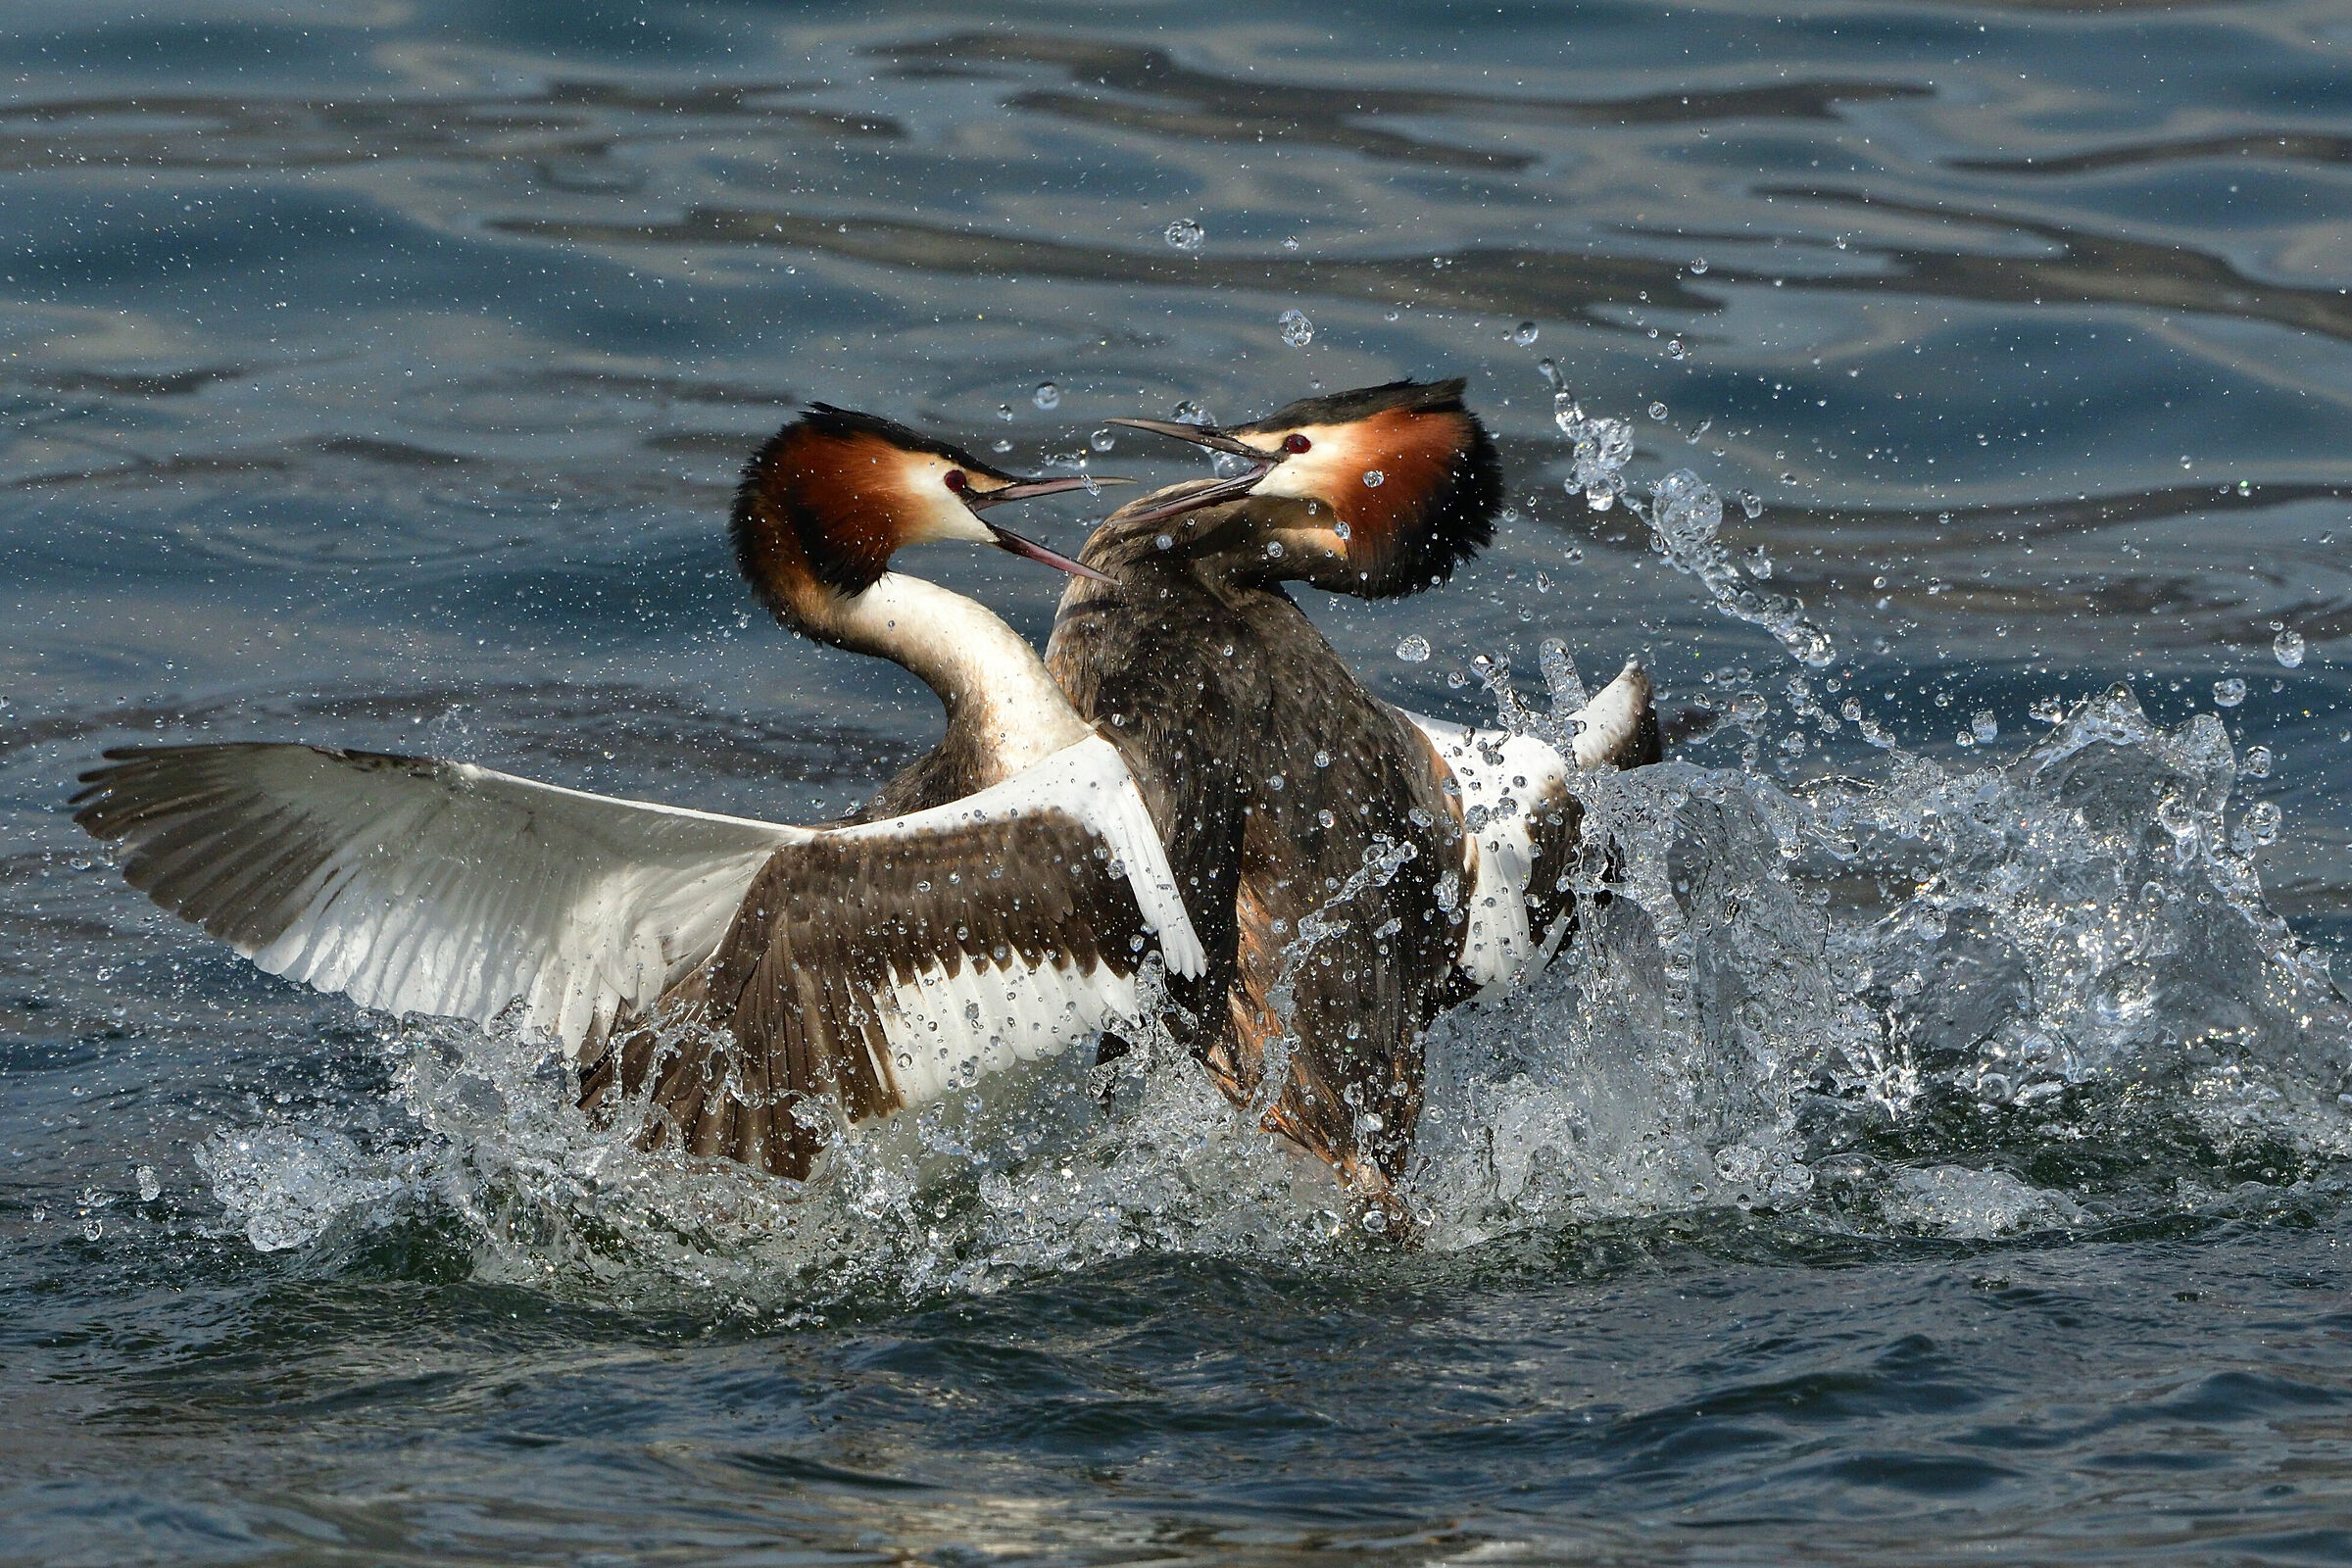 Grebe Magg.-A rather lively discussion-Iseo...